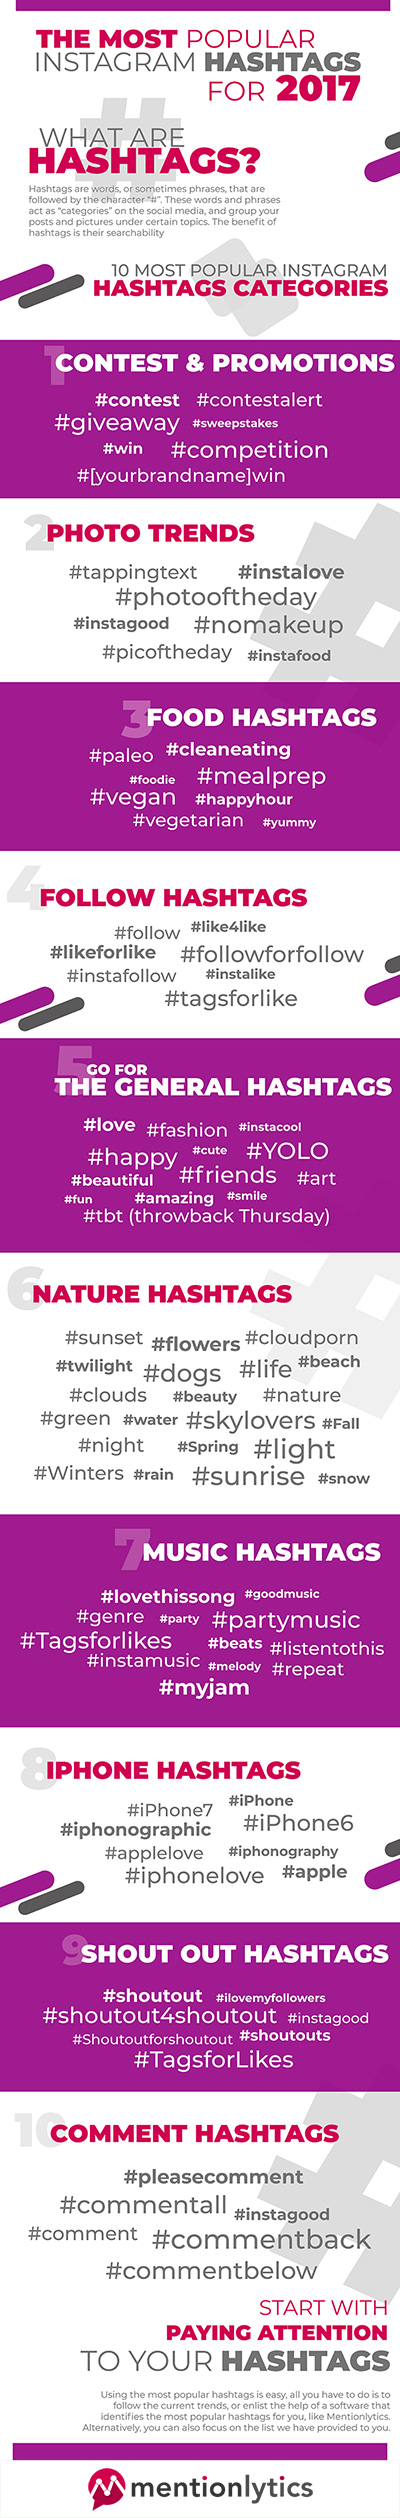 infographic-instagram-hashtags-2017